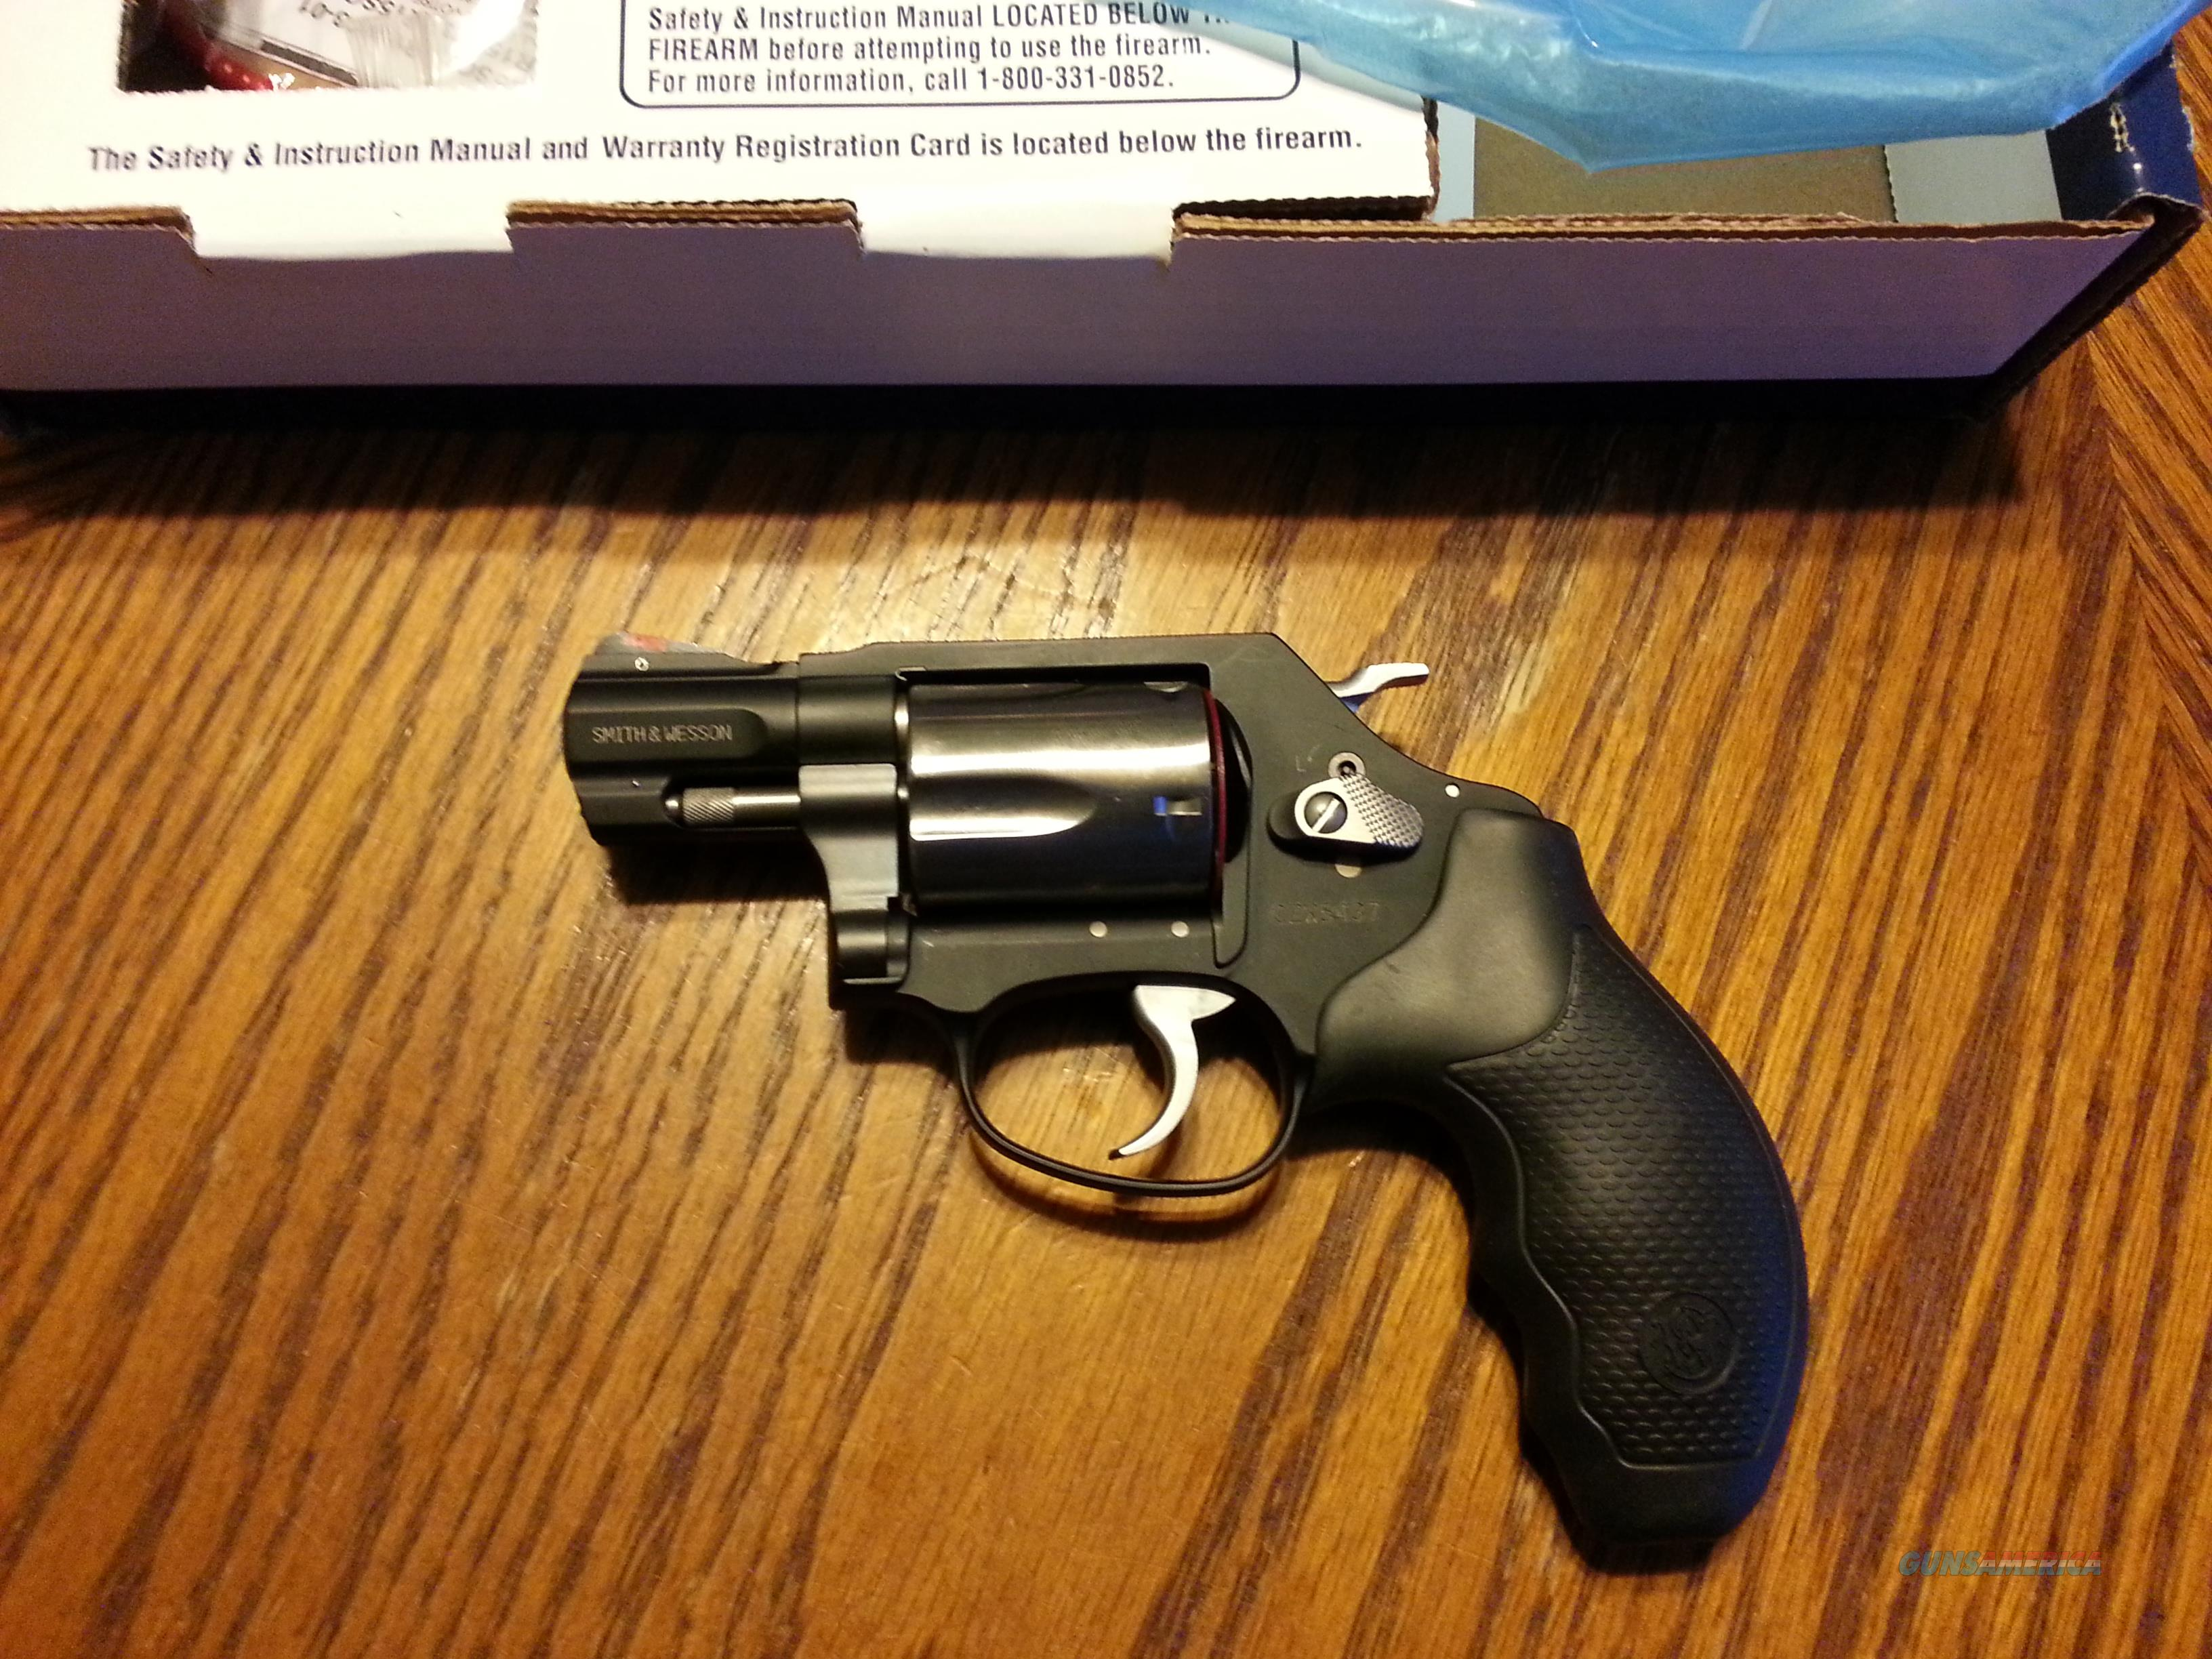 Smith & Wesson S&W M360 357 Magnum 5 Shot Airwe... for sale